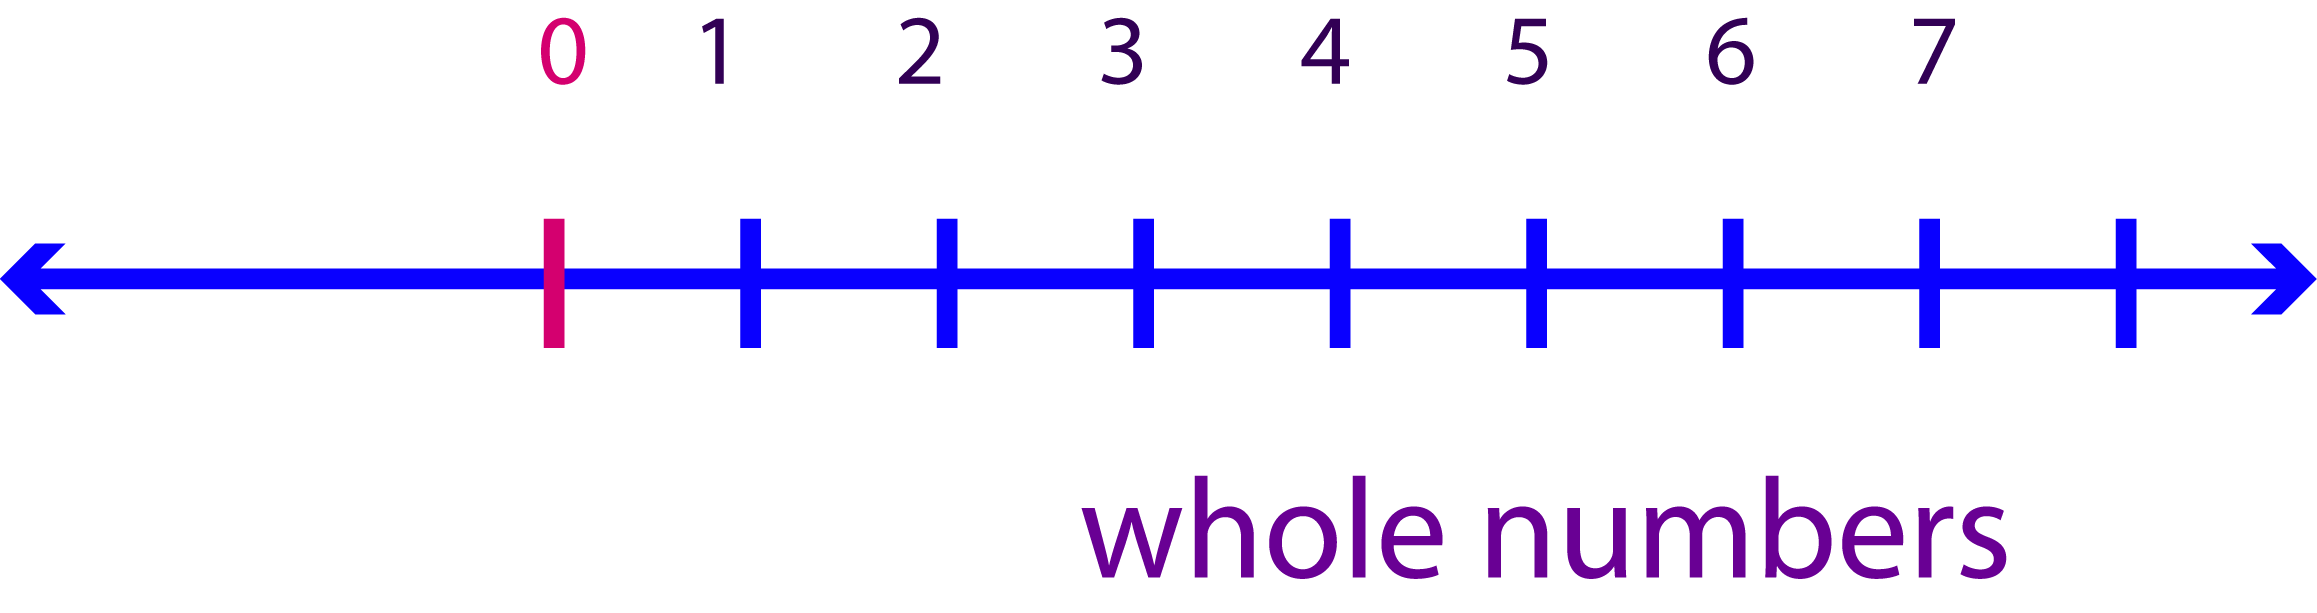 worksheet Create A Number Line mathspace is a number just the inclusion of value for zero to set natural numbers create what we call whole numbers